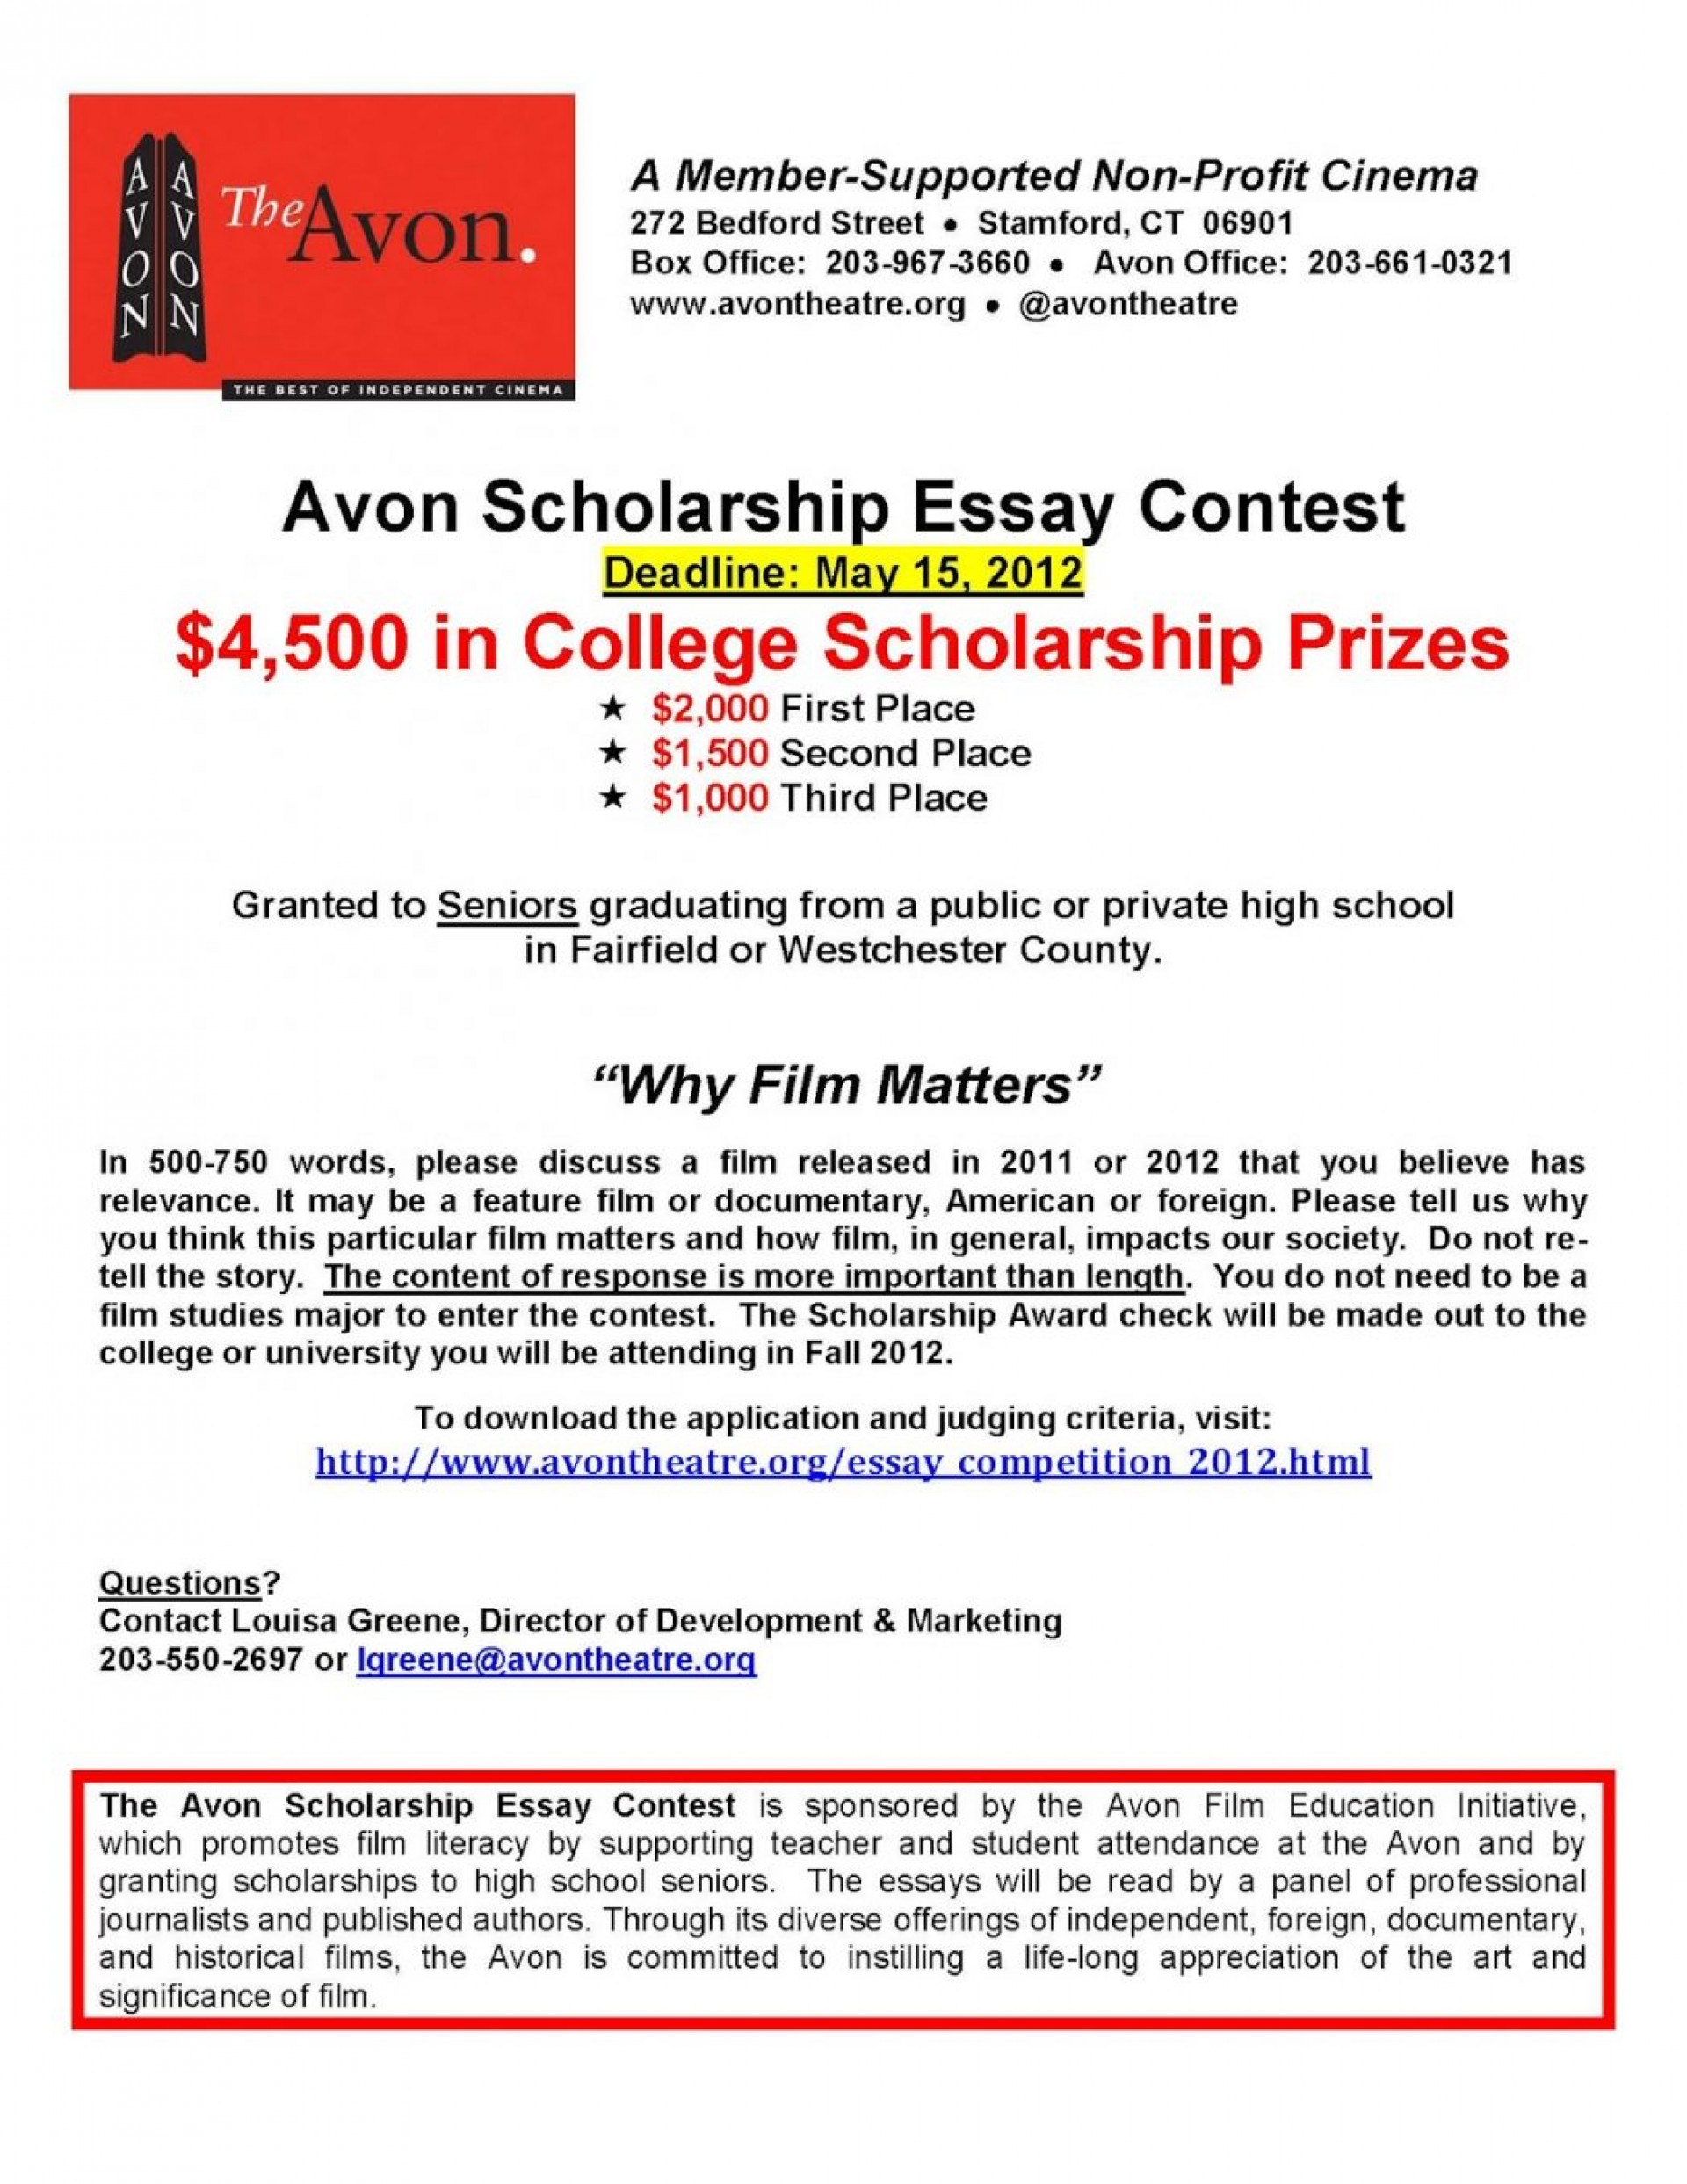 021 No Essay College Scholarship Prowler Avonscholarshipessaycontest2012 Easy Scholarships For High School Students 1048x1357 Without Astounding Essays 2019 2018 1920